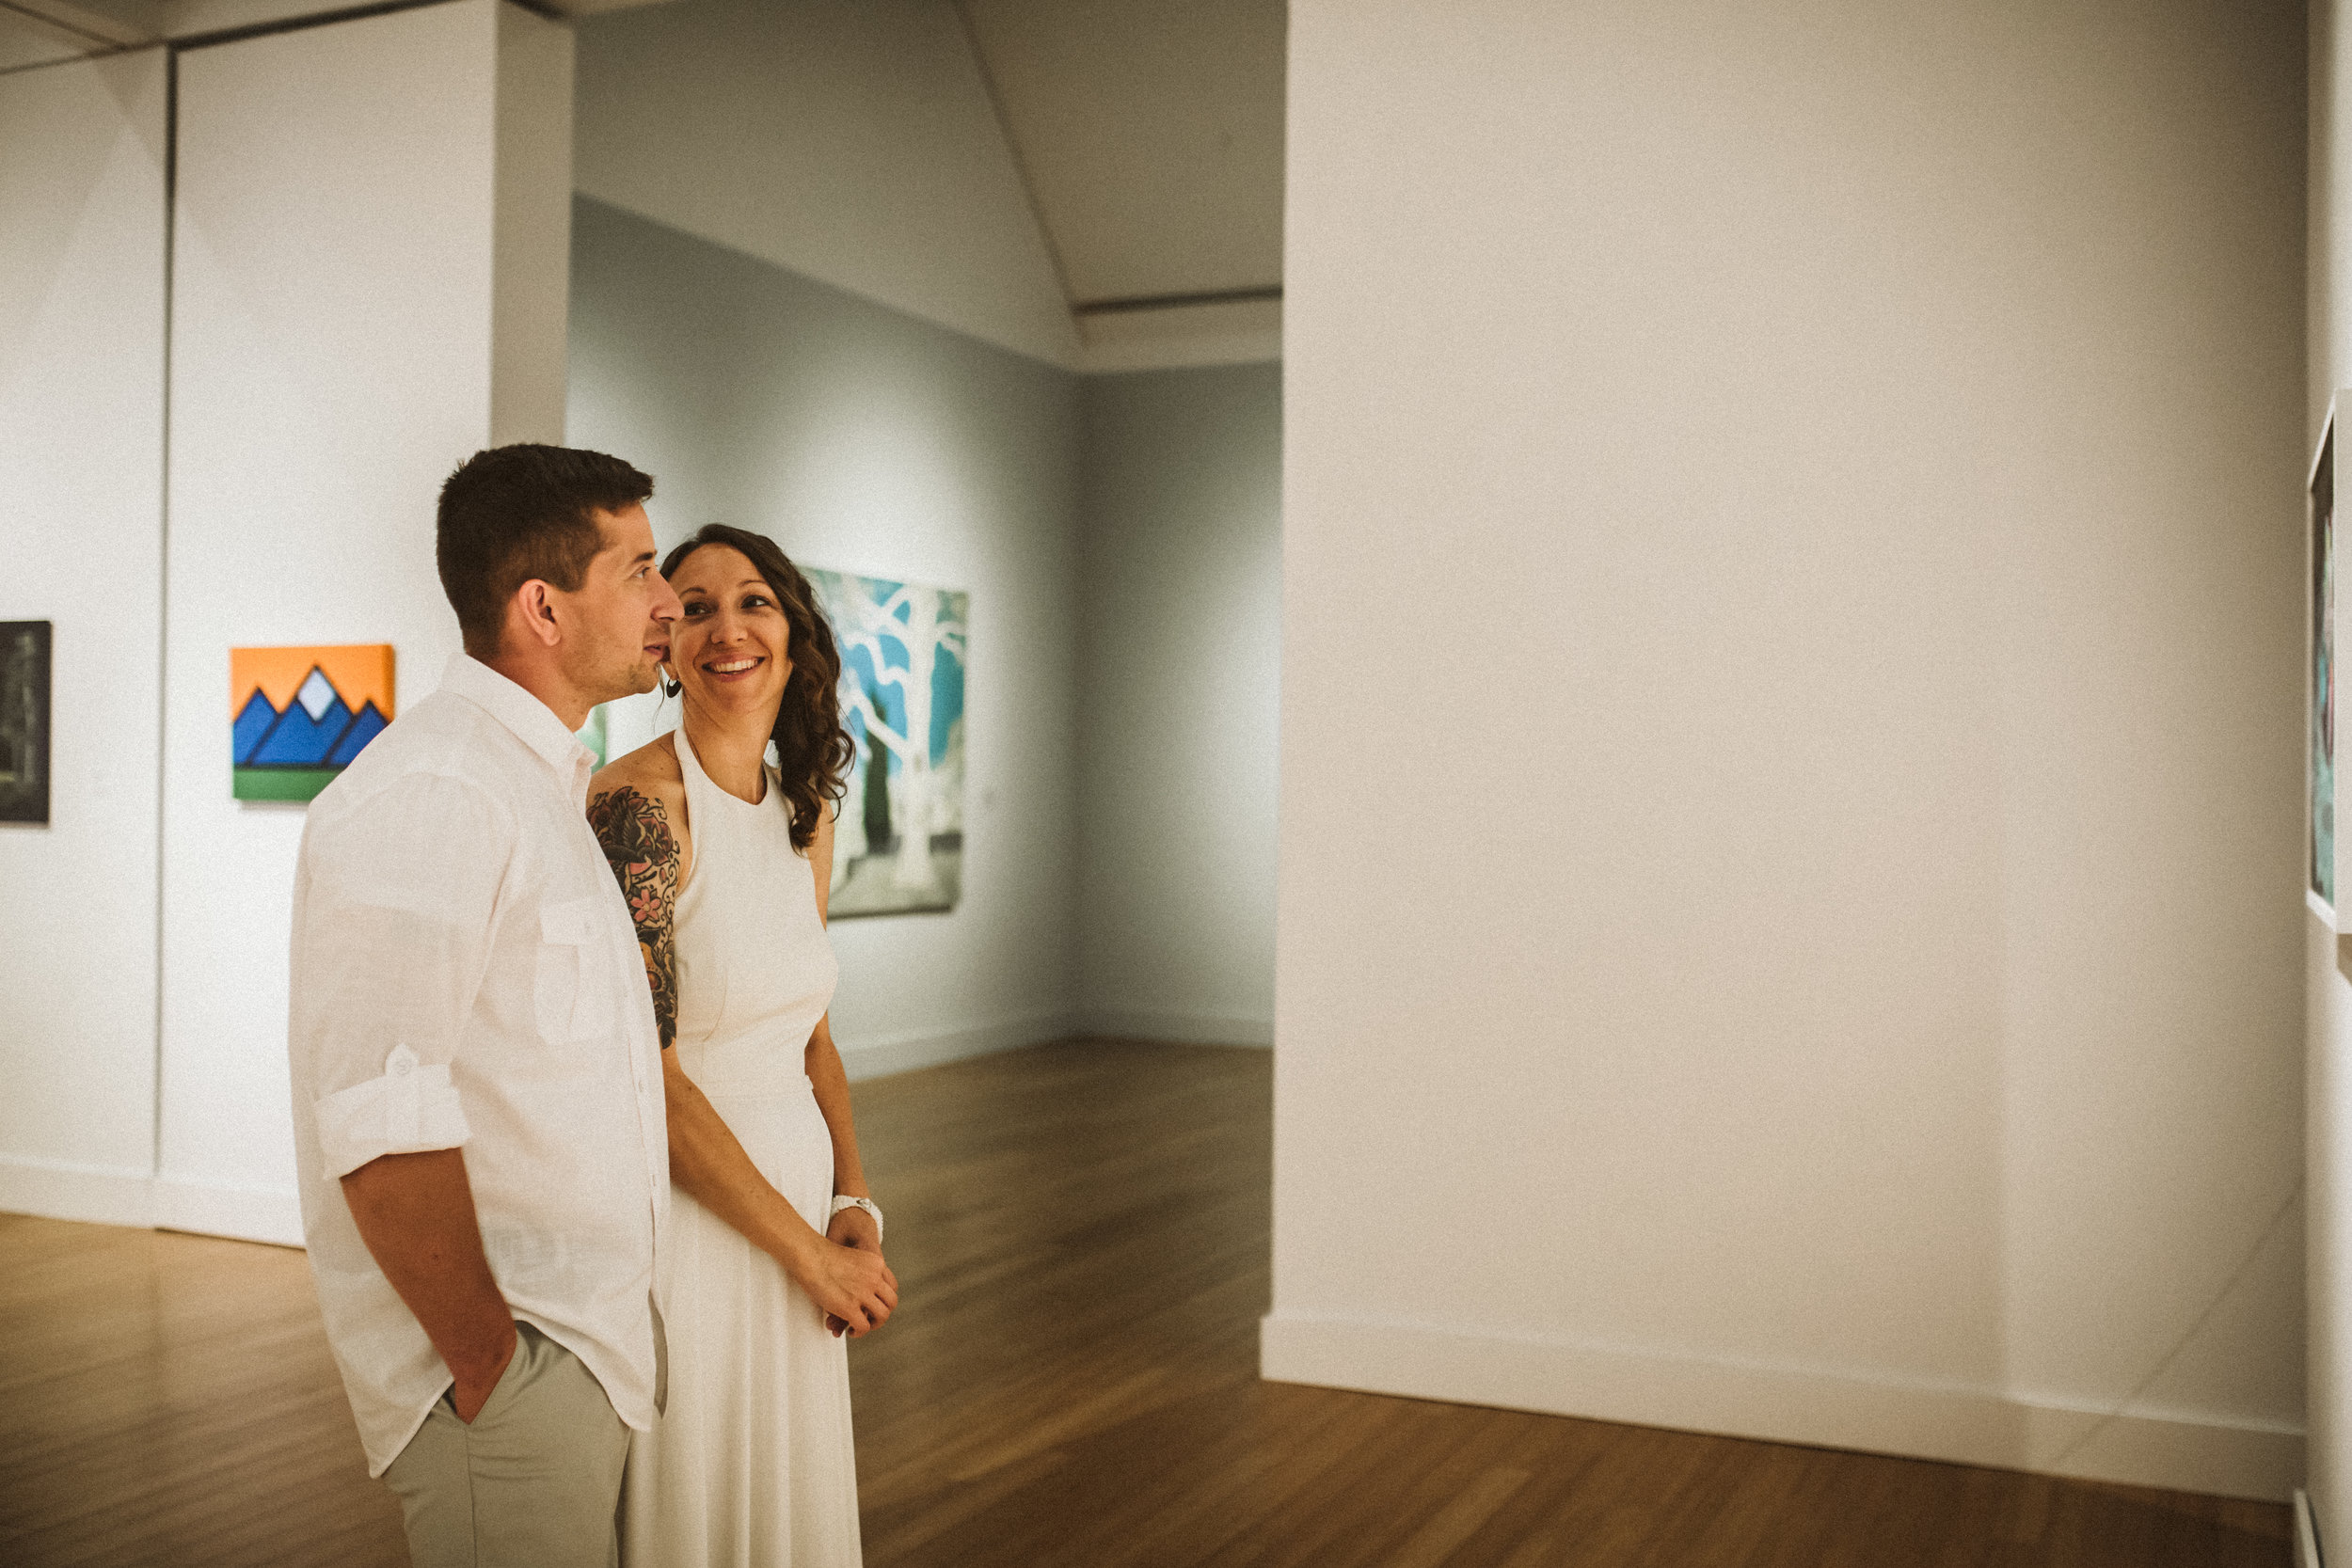 susanandkennethdorswitt.virginiaMOCA.virginiabeach.virginia.rebeccaburtphotography.art.wedding-174.jpg